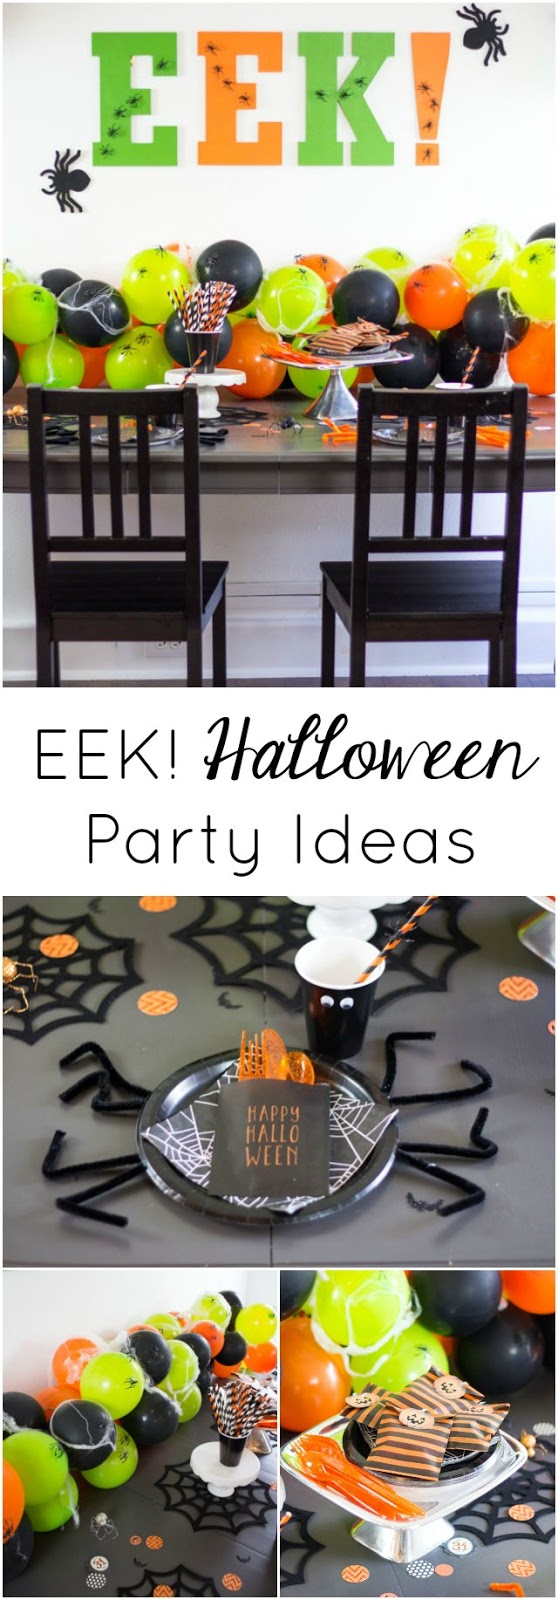 Simple ideas for hosting a creepy crawly spider-themed Halloween party!